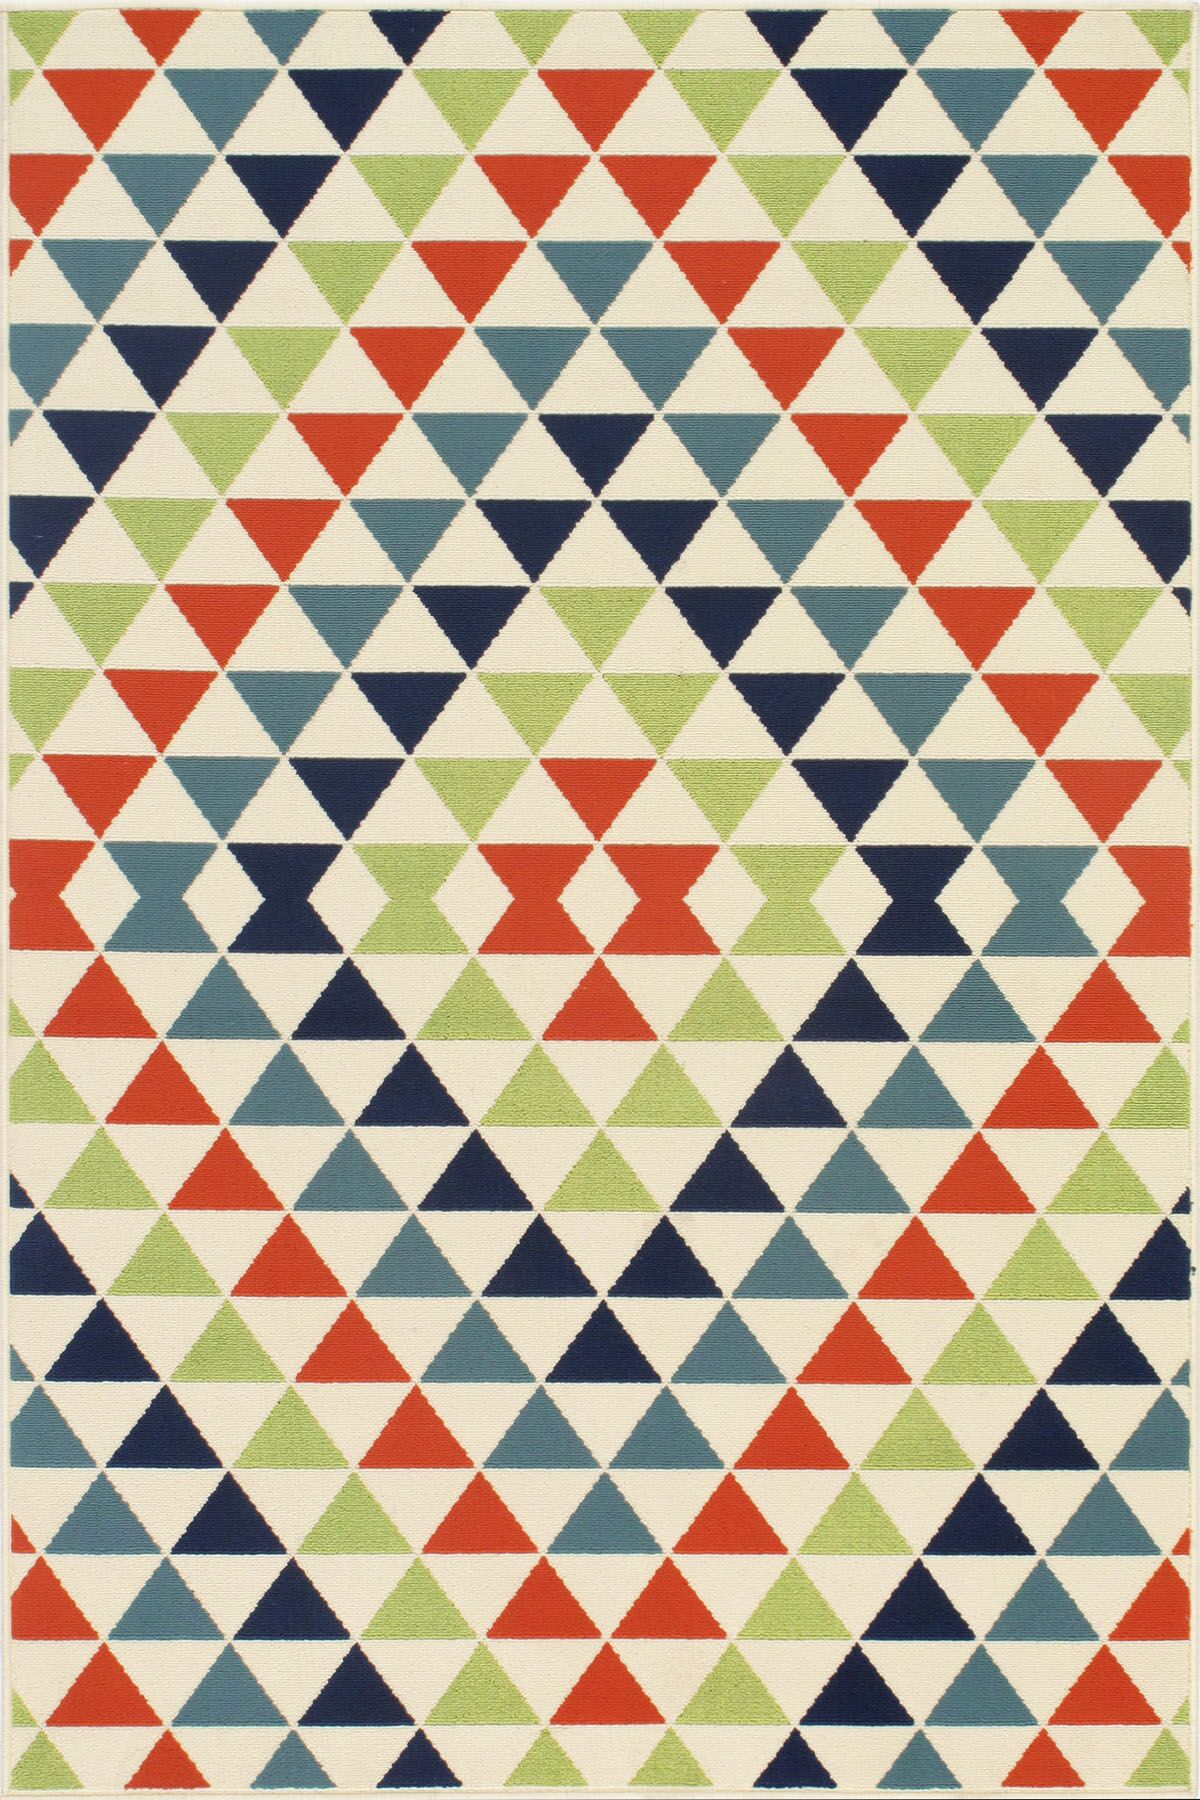 Bourgeois Hand-Woven Blue/Green/Red Indoor/Outdoor Area Rug Rug Size: Rectangle 5'3